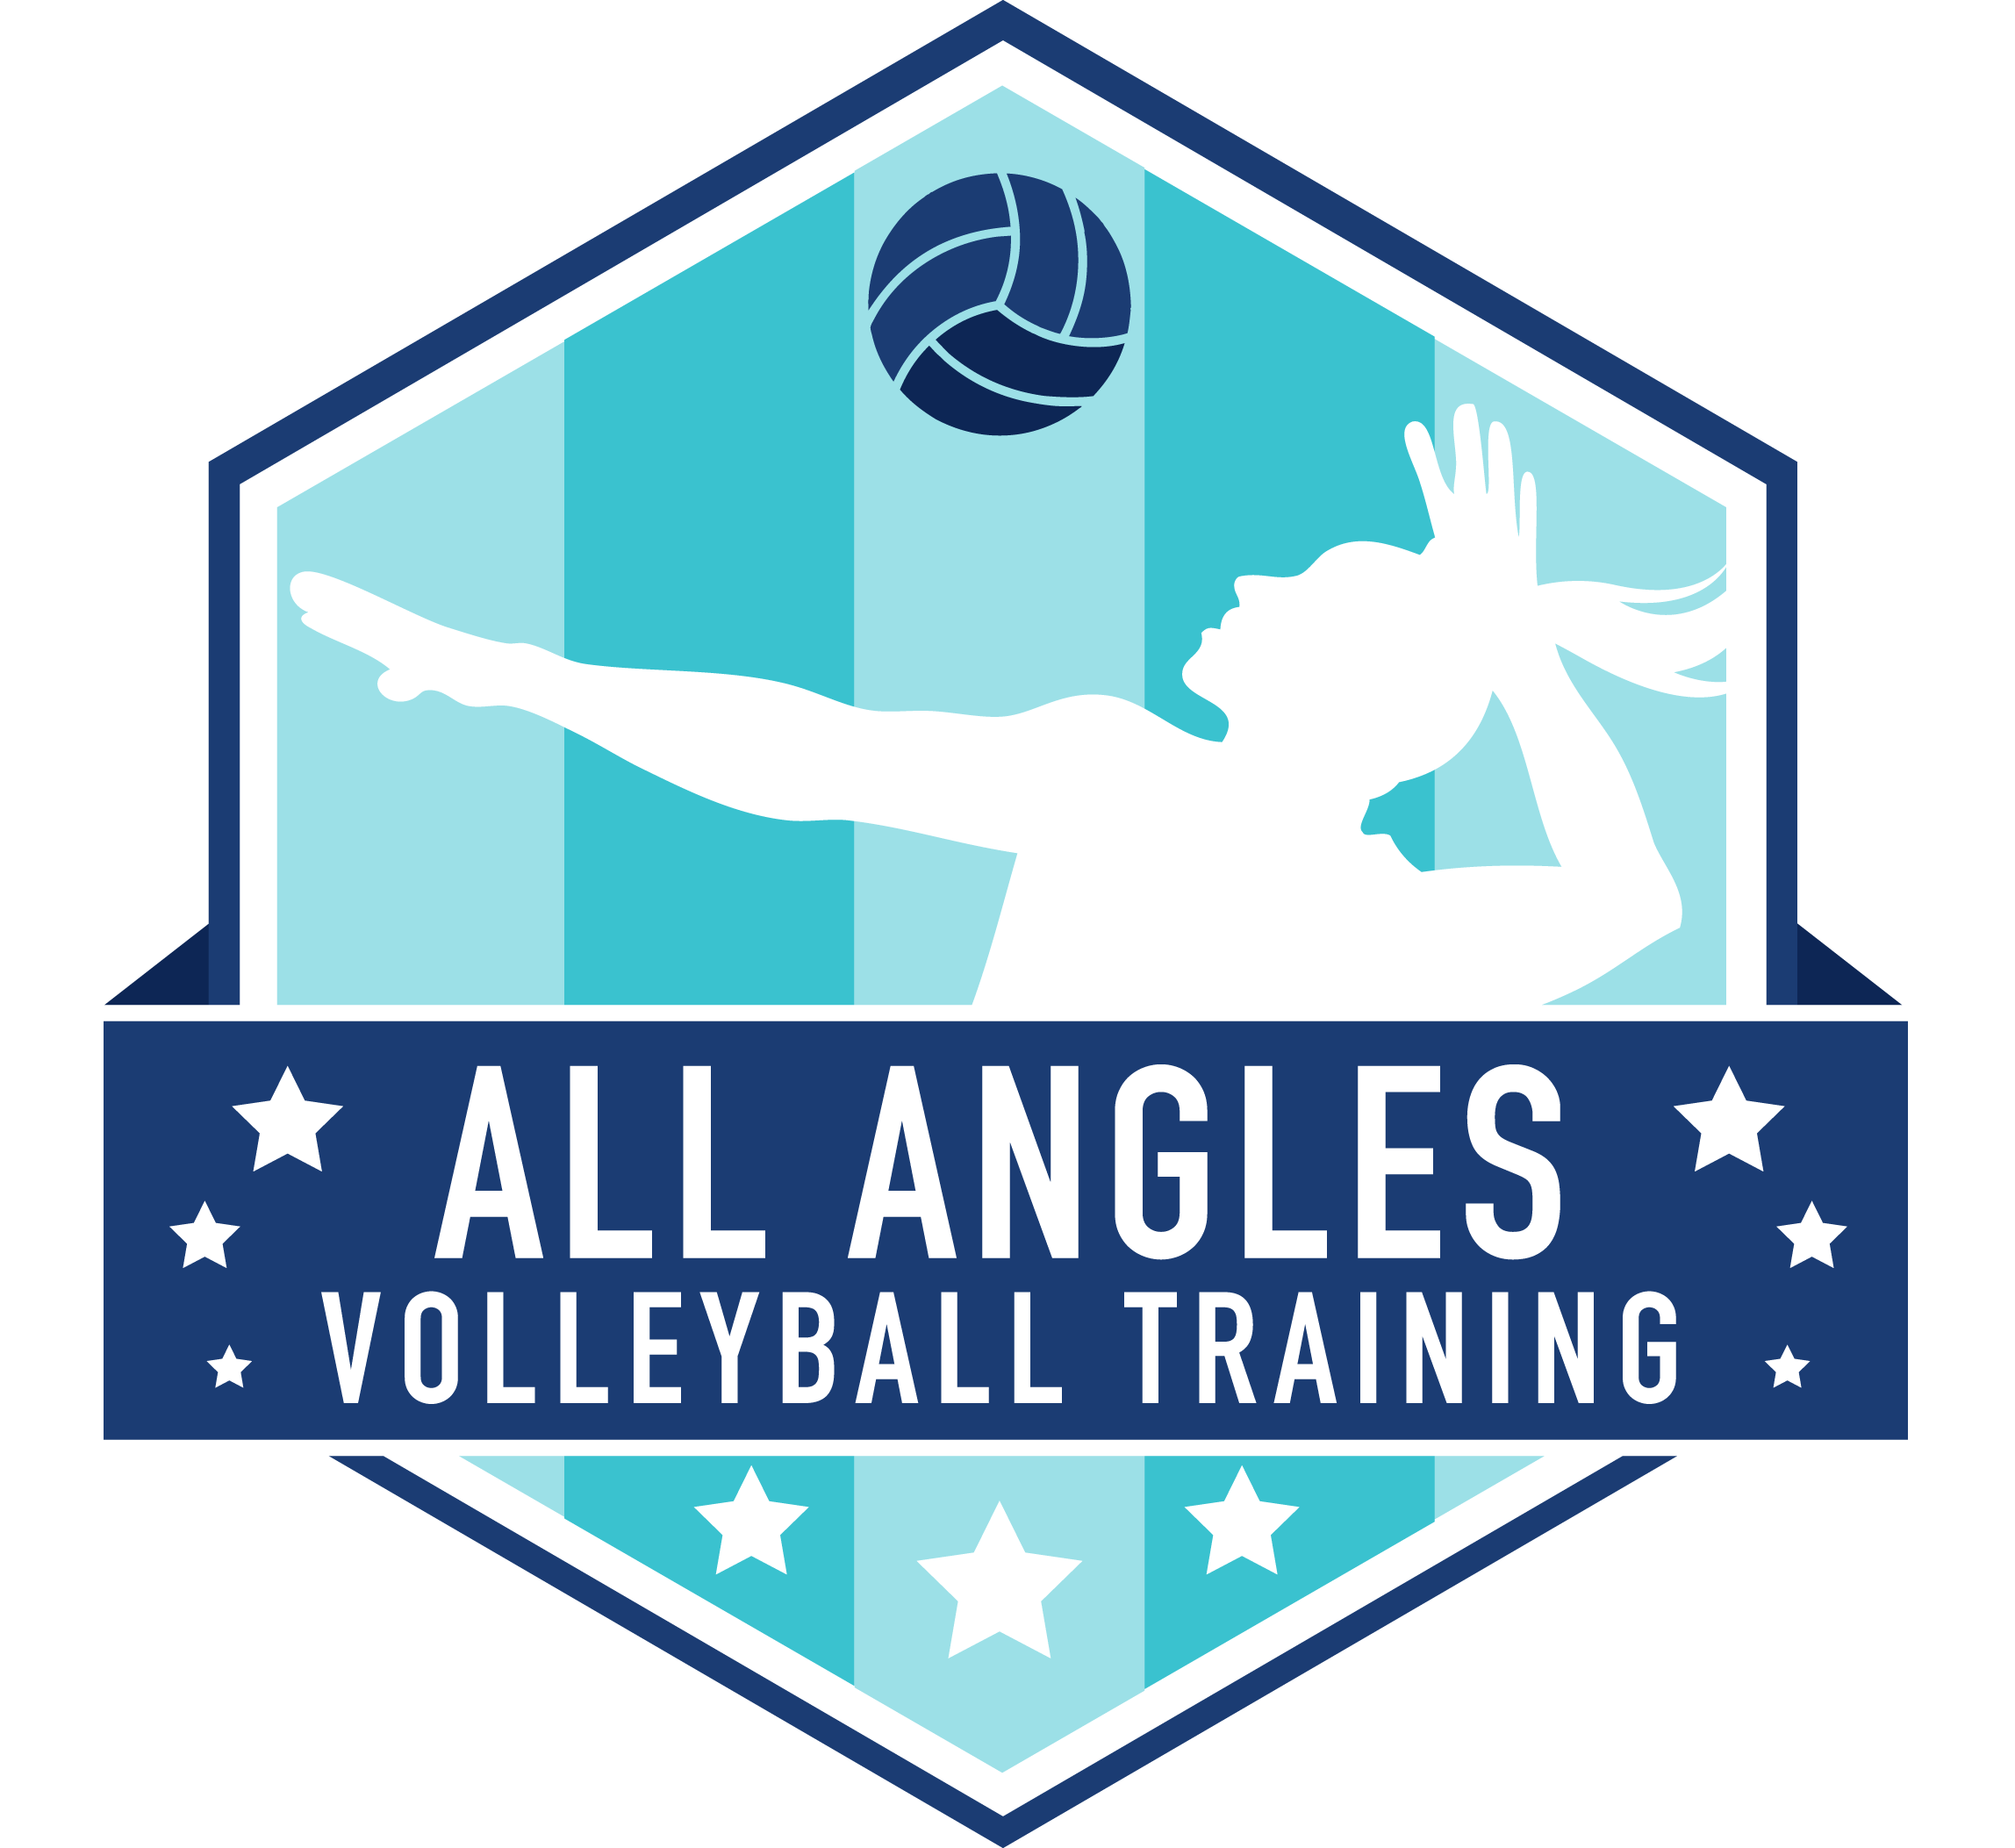 All Angles Volleyball Training